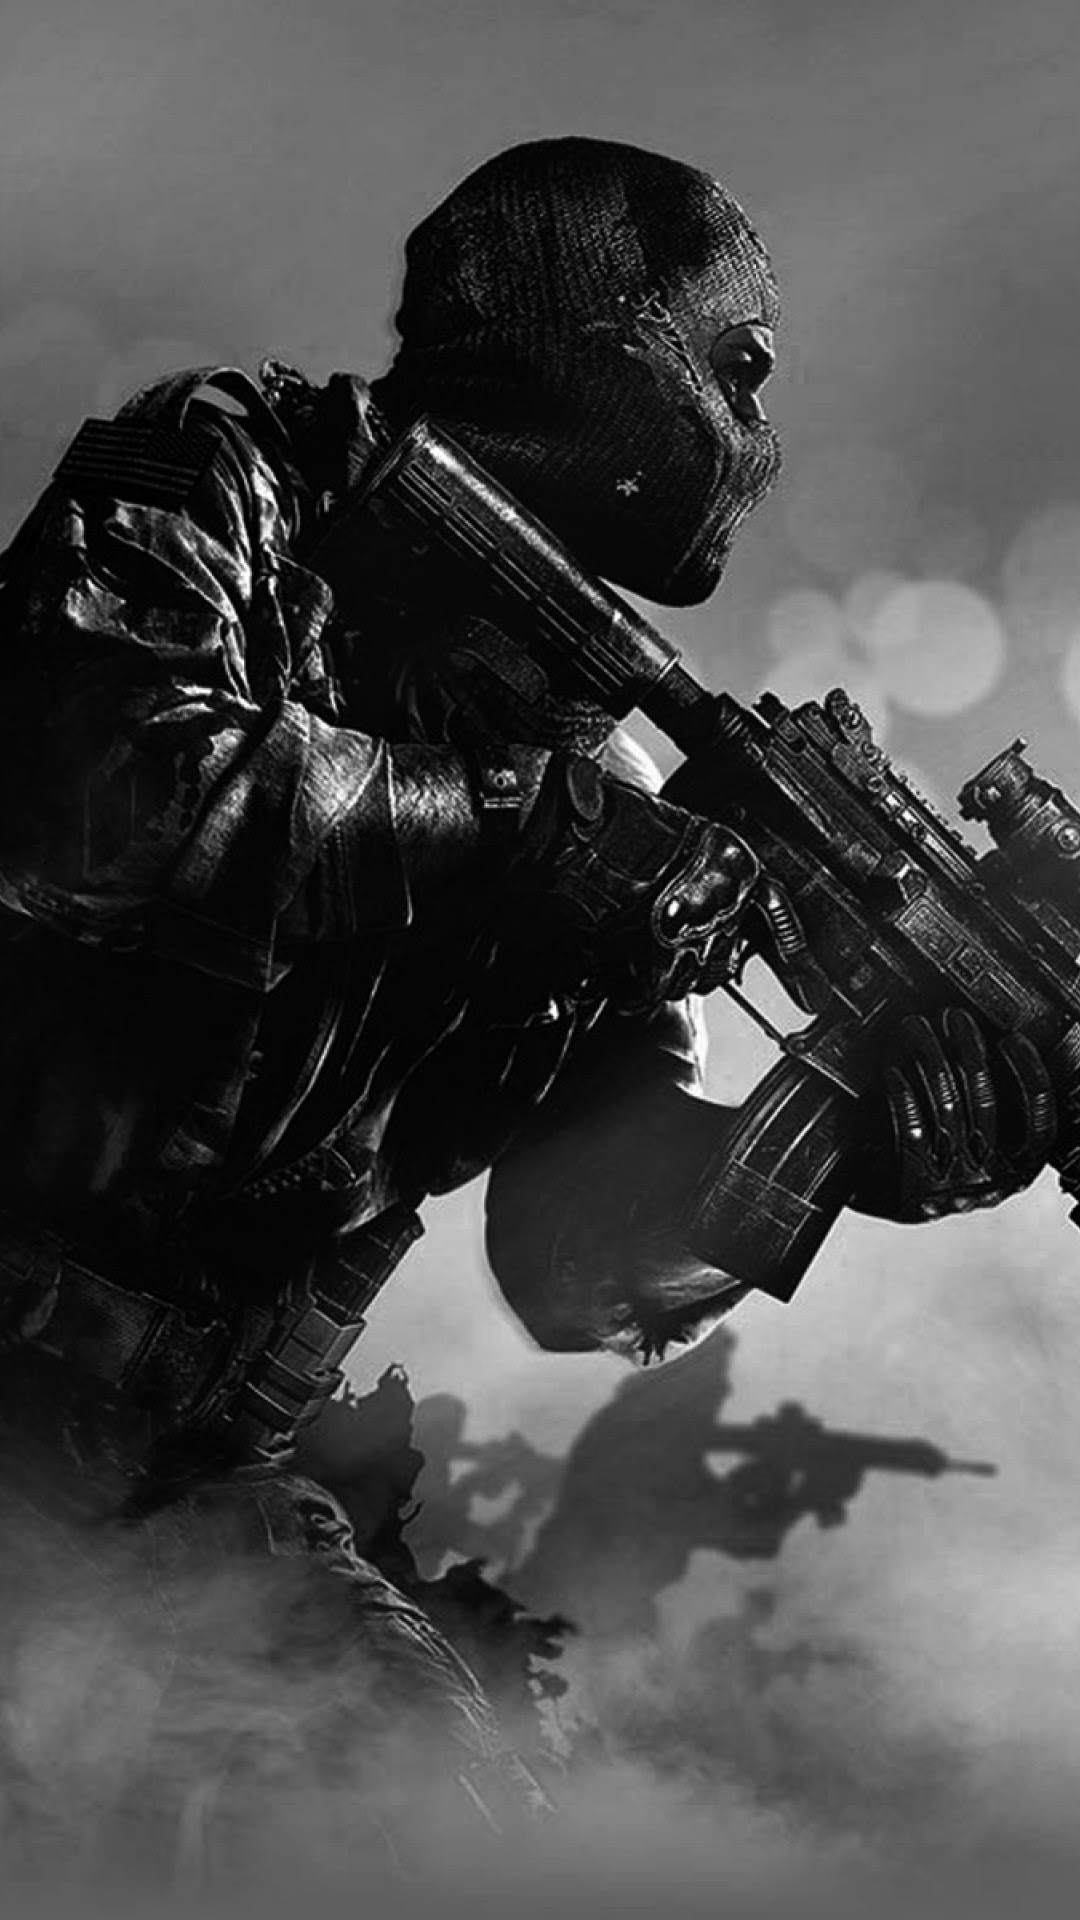 call of duty ghost phone wallpaper hd